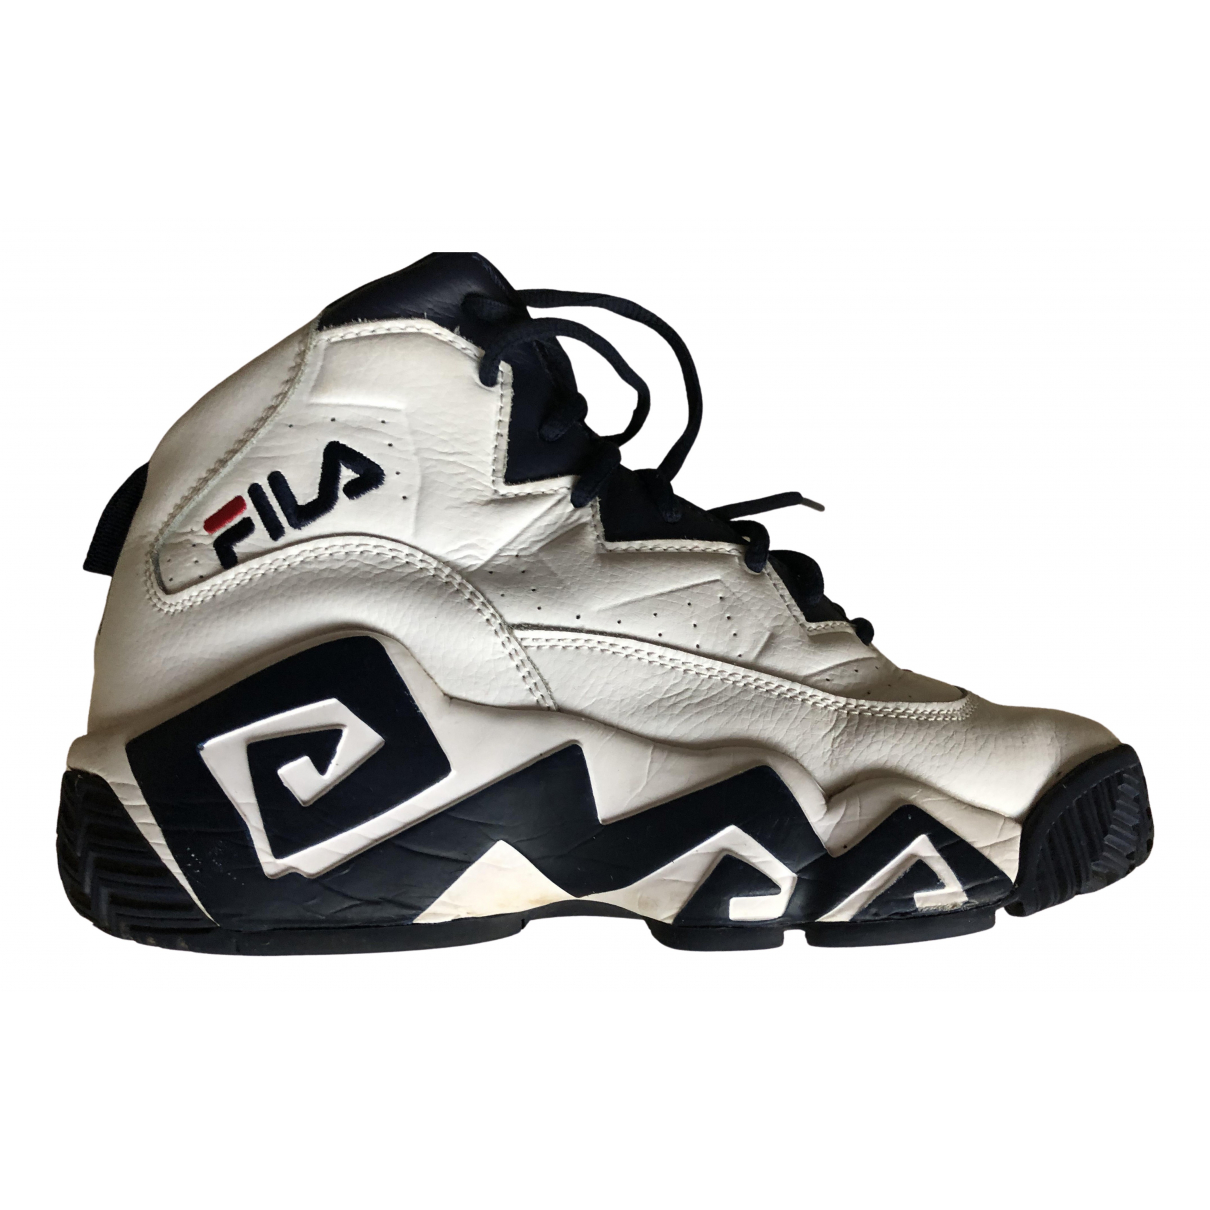 Fila N White Leather Trainers for Men 41 EU